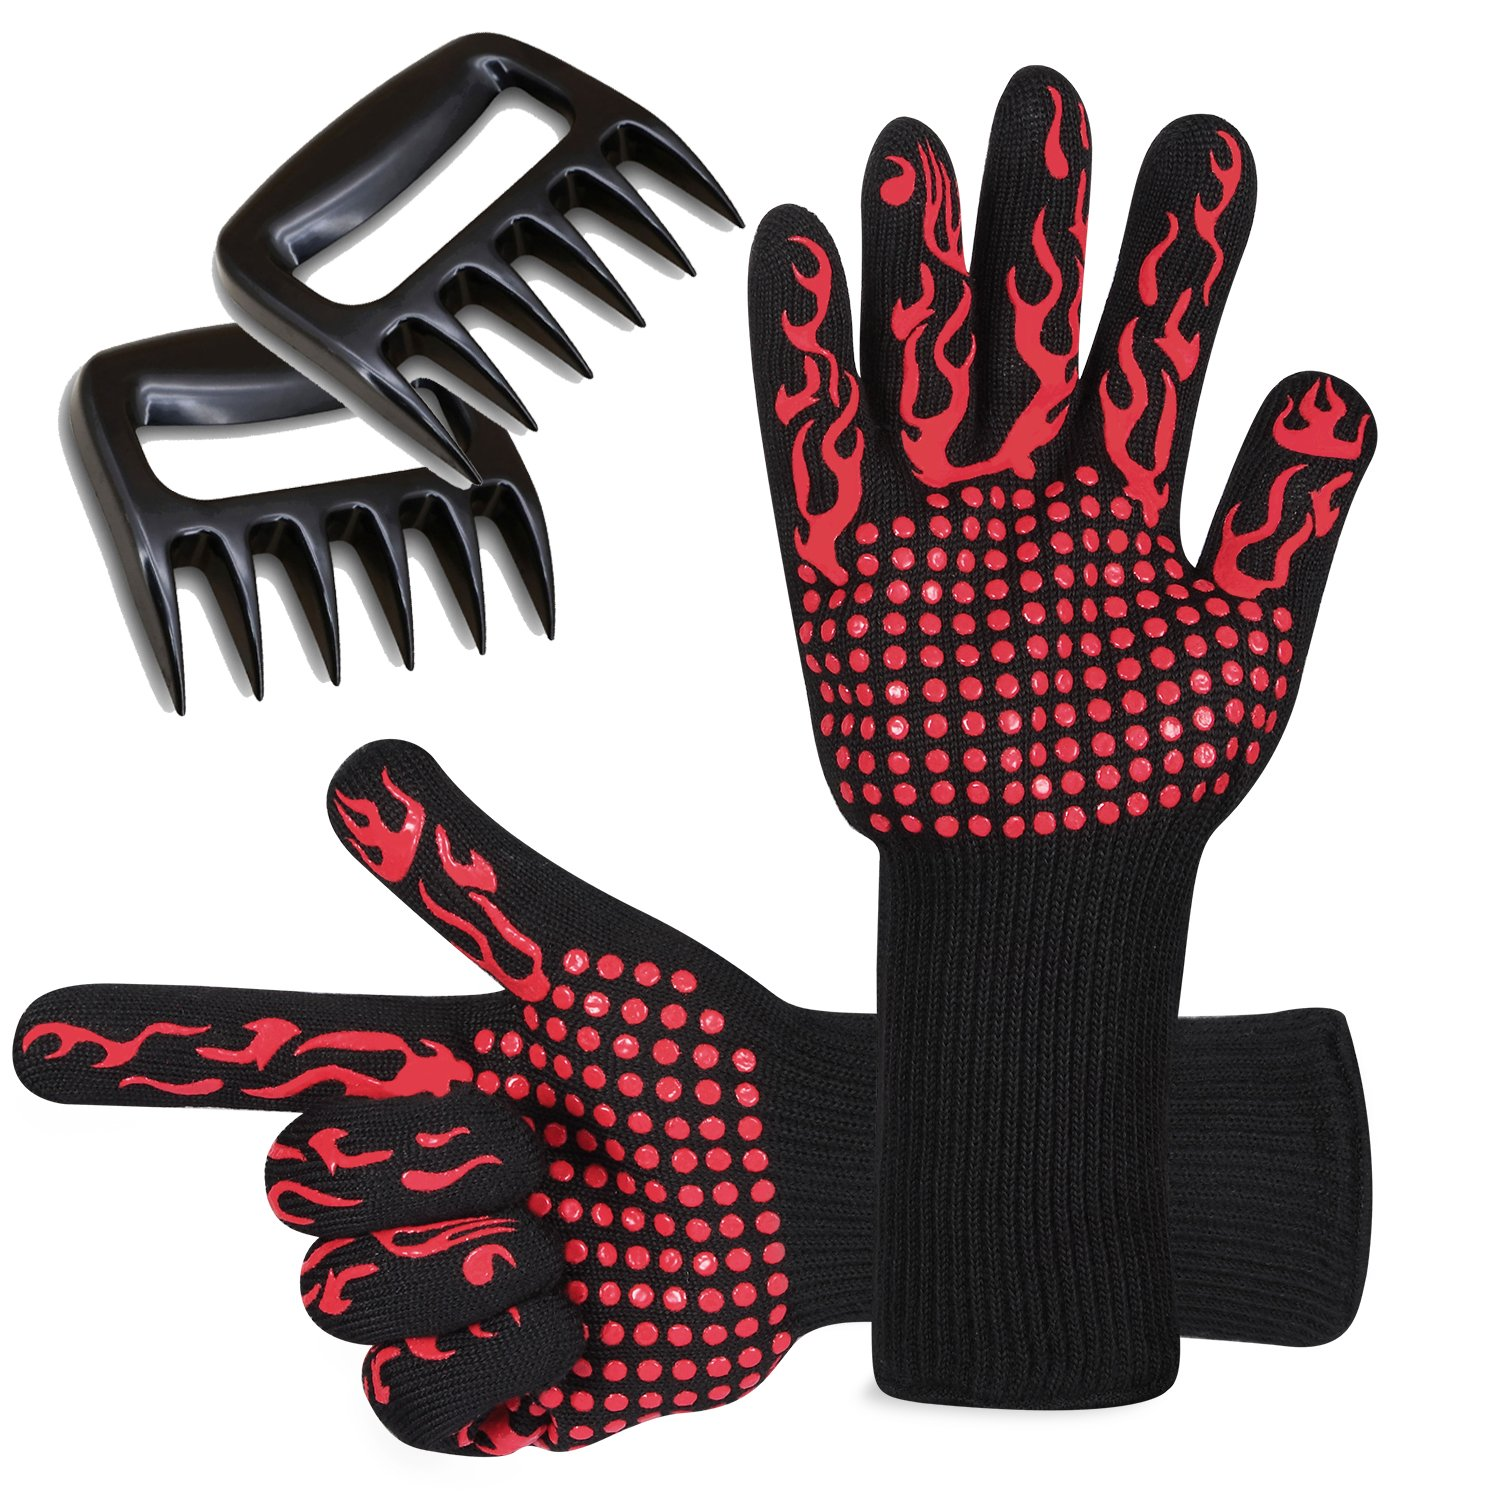 Prumya BBQ Gloves and Meat Shredder Claws Set, Heat Resistant Grilling Cooking Gloves Oven Mitts & Pulled Pork Claws, Home kitchen Accessories BBQ Tool for Outdoor and Indoor Use GL02